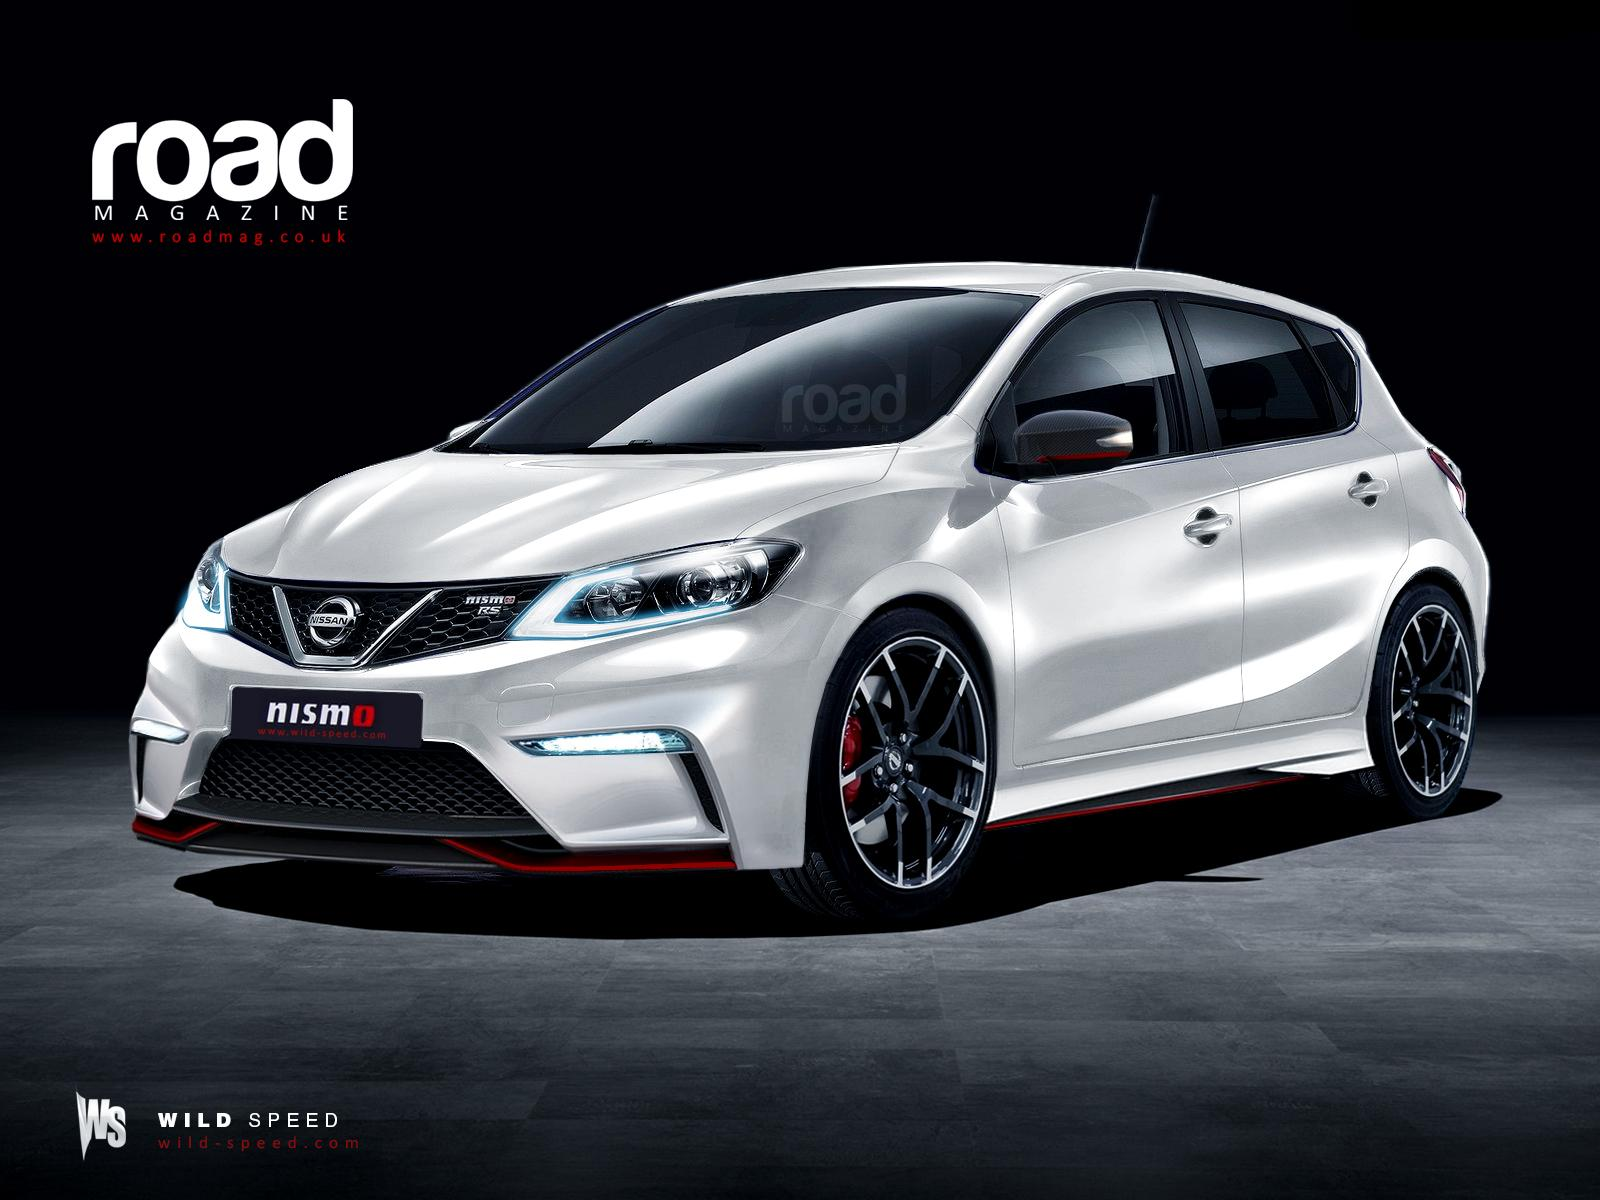 Nissan Cars News 198kw Turbo Four For Nismo Performance